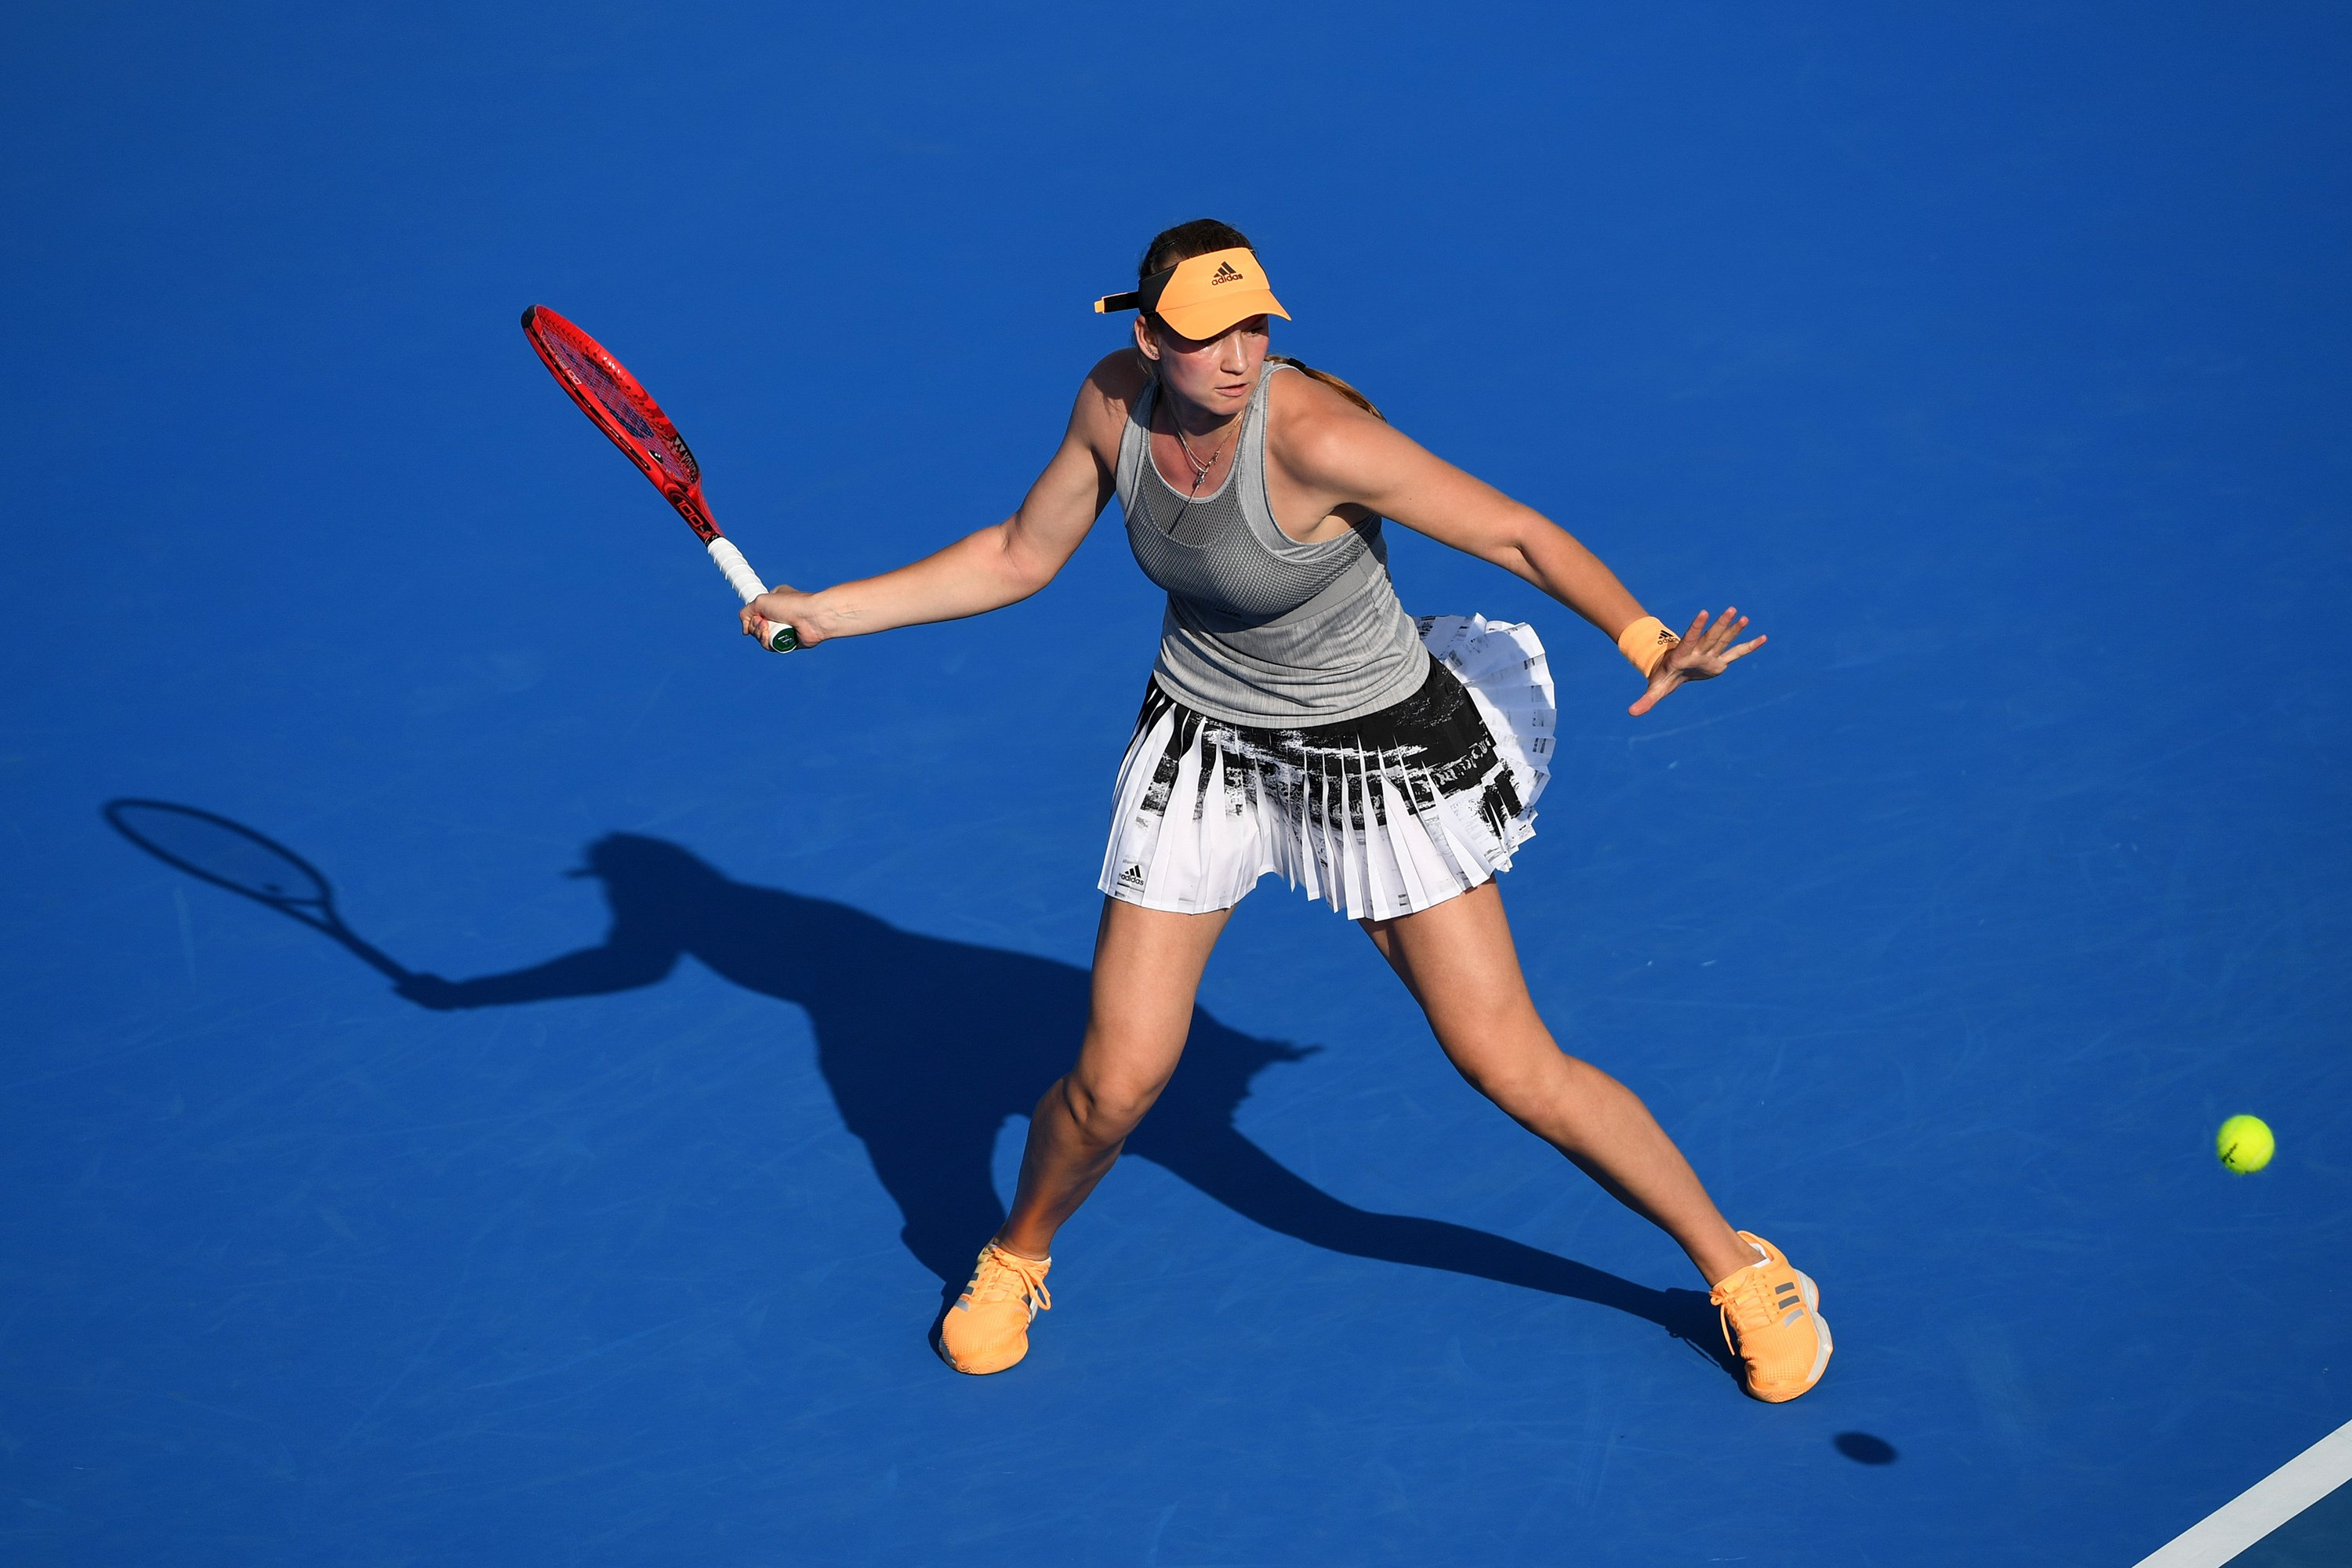 Elena Rybakina claims second title of her career and hits form ahead of Australian Open, beating Zhang Shuai in straight-sets in Hobart International final